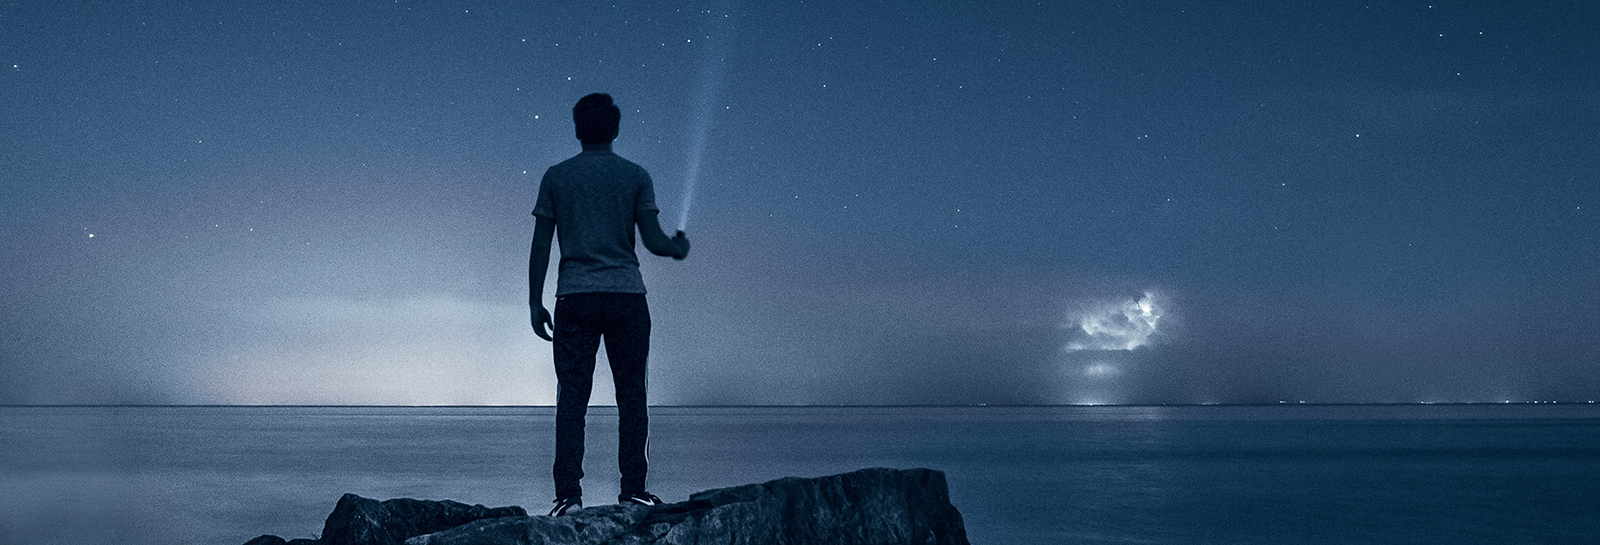 a man standing on a rock at the beach at night